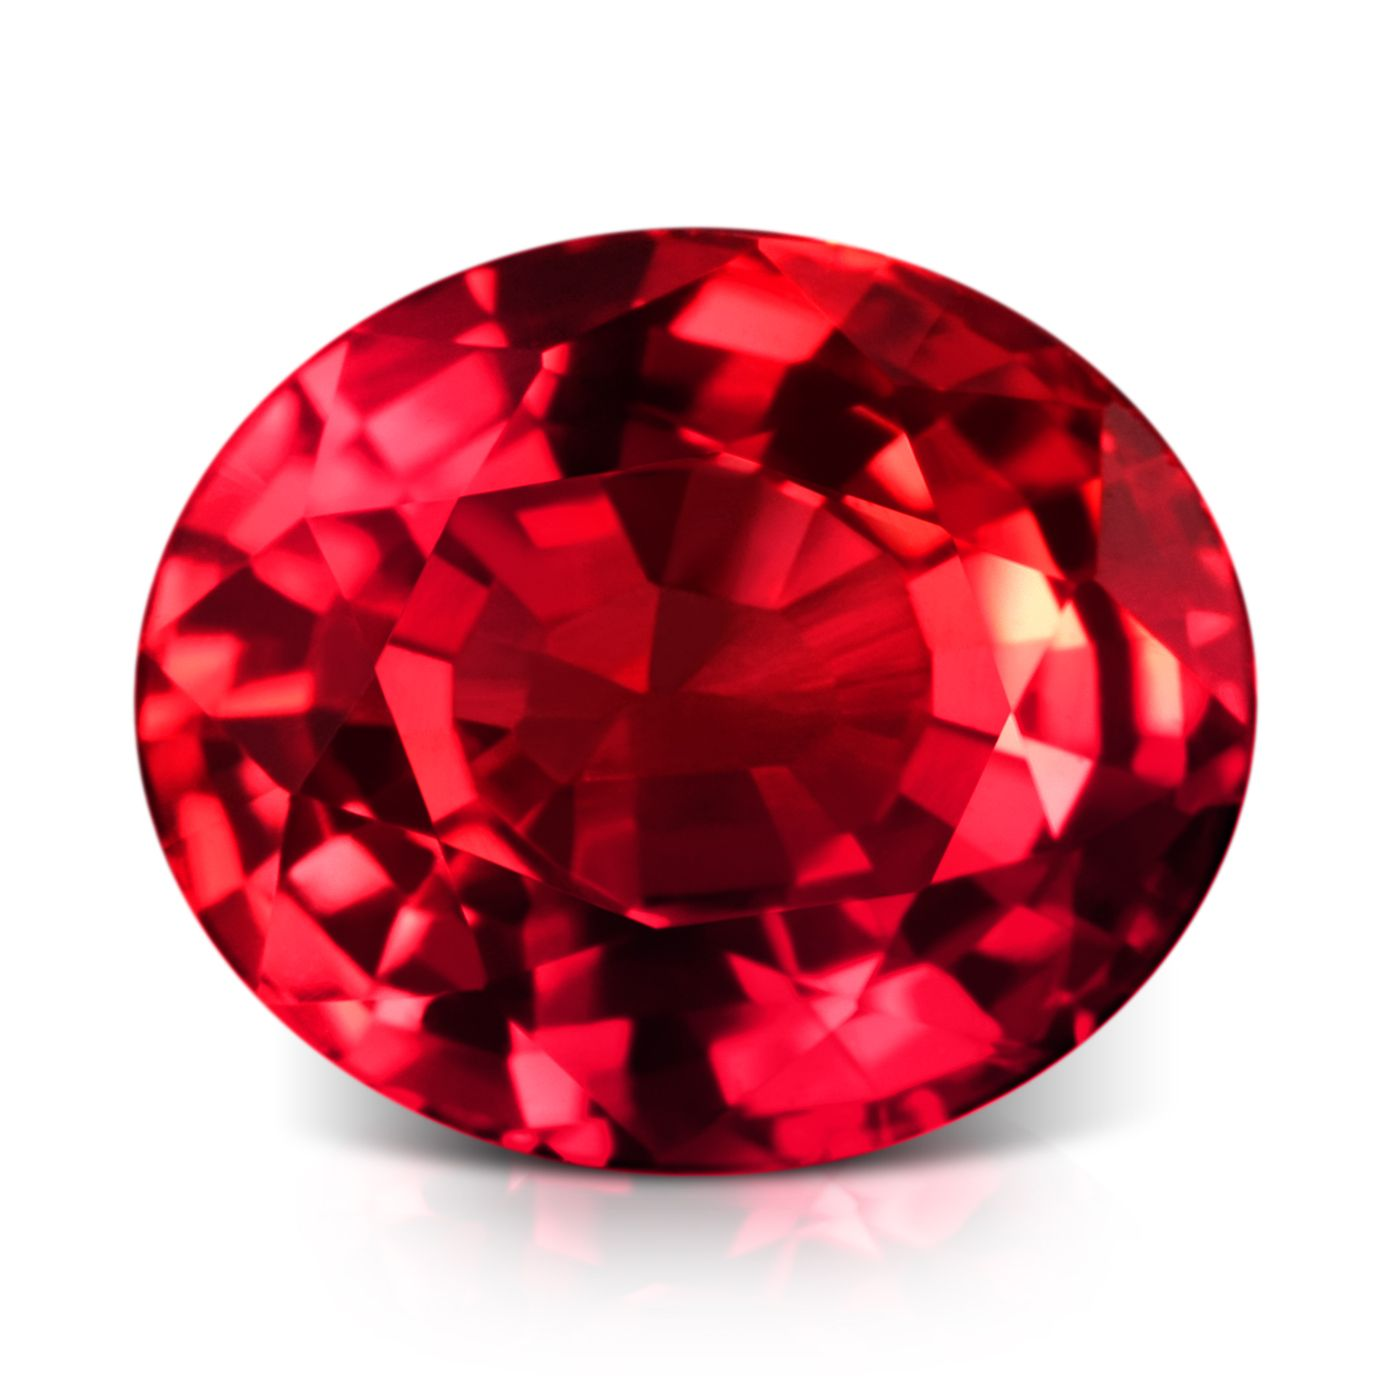 ruby benefits youtube watch gemstone